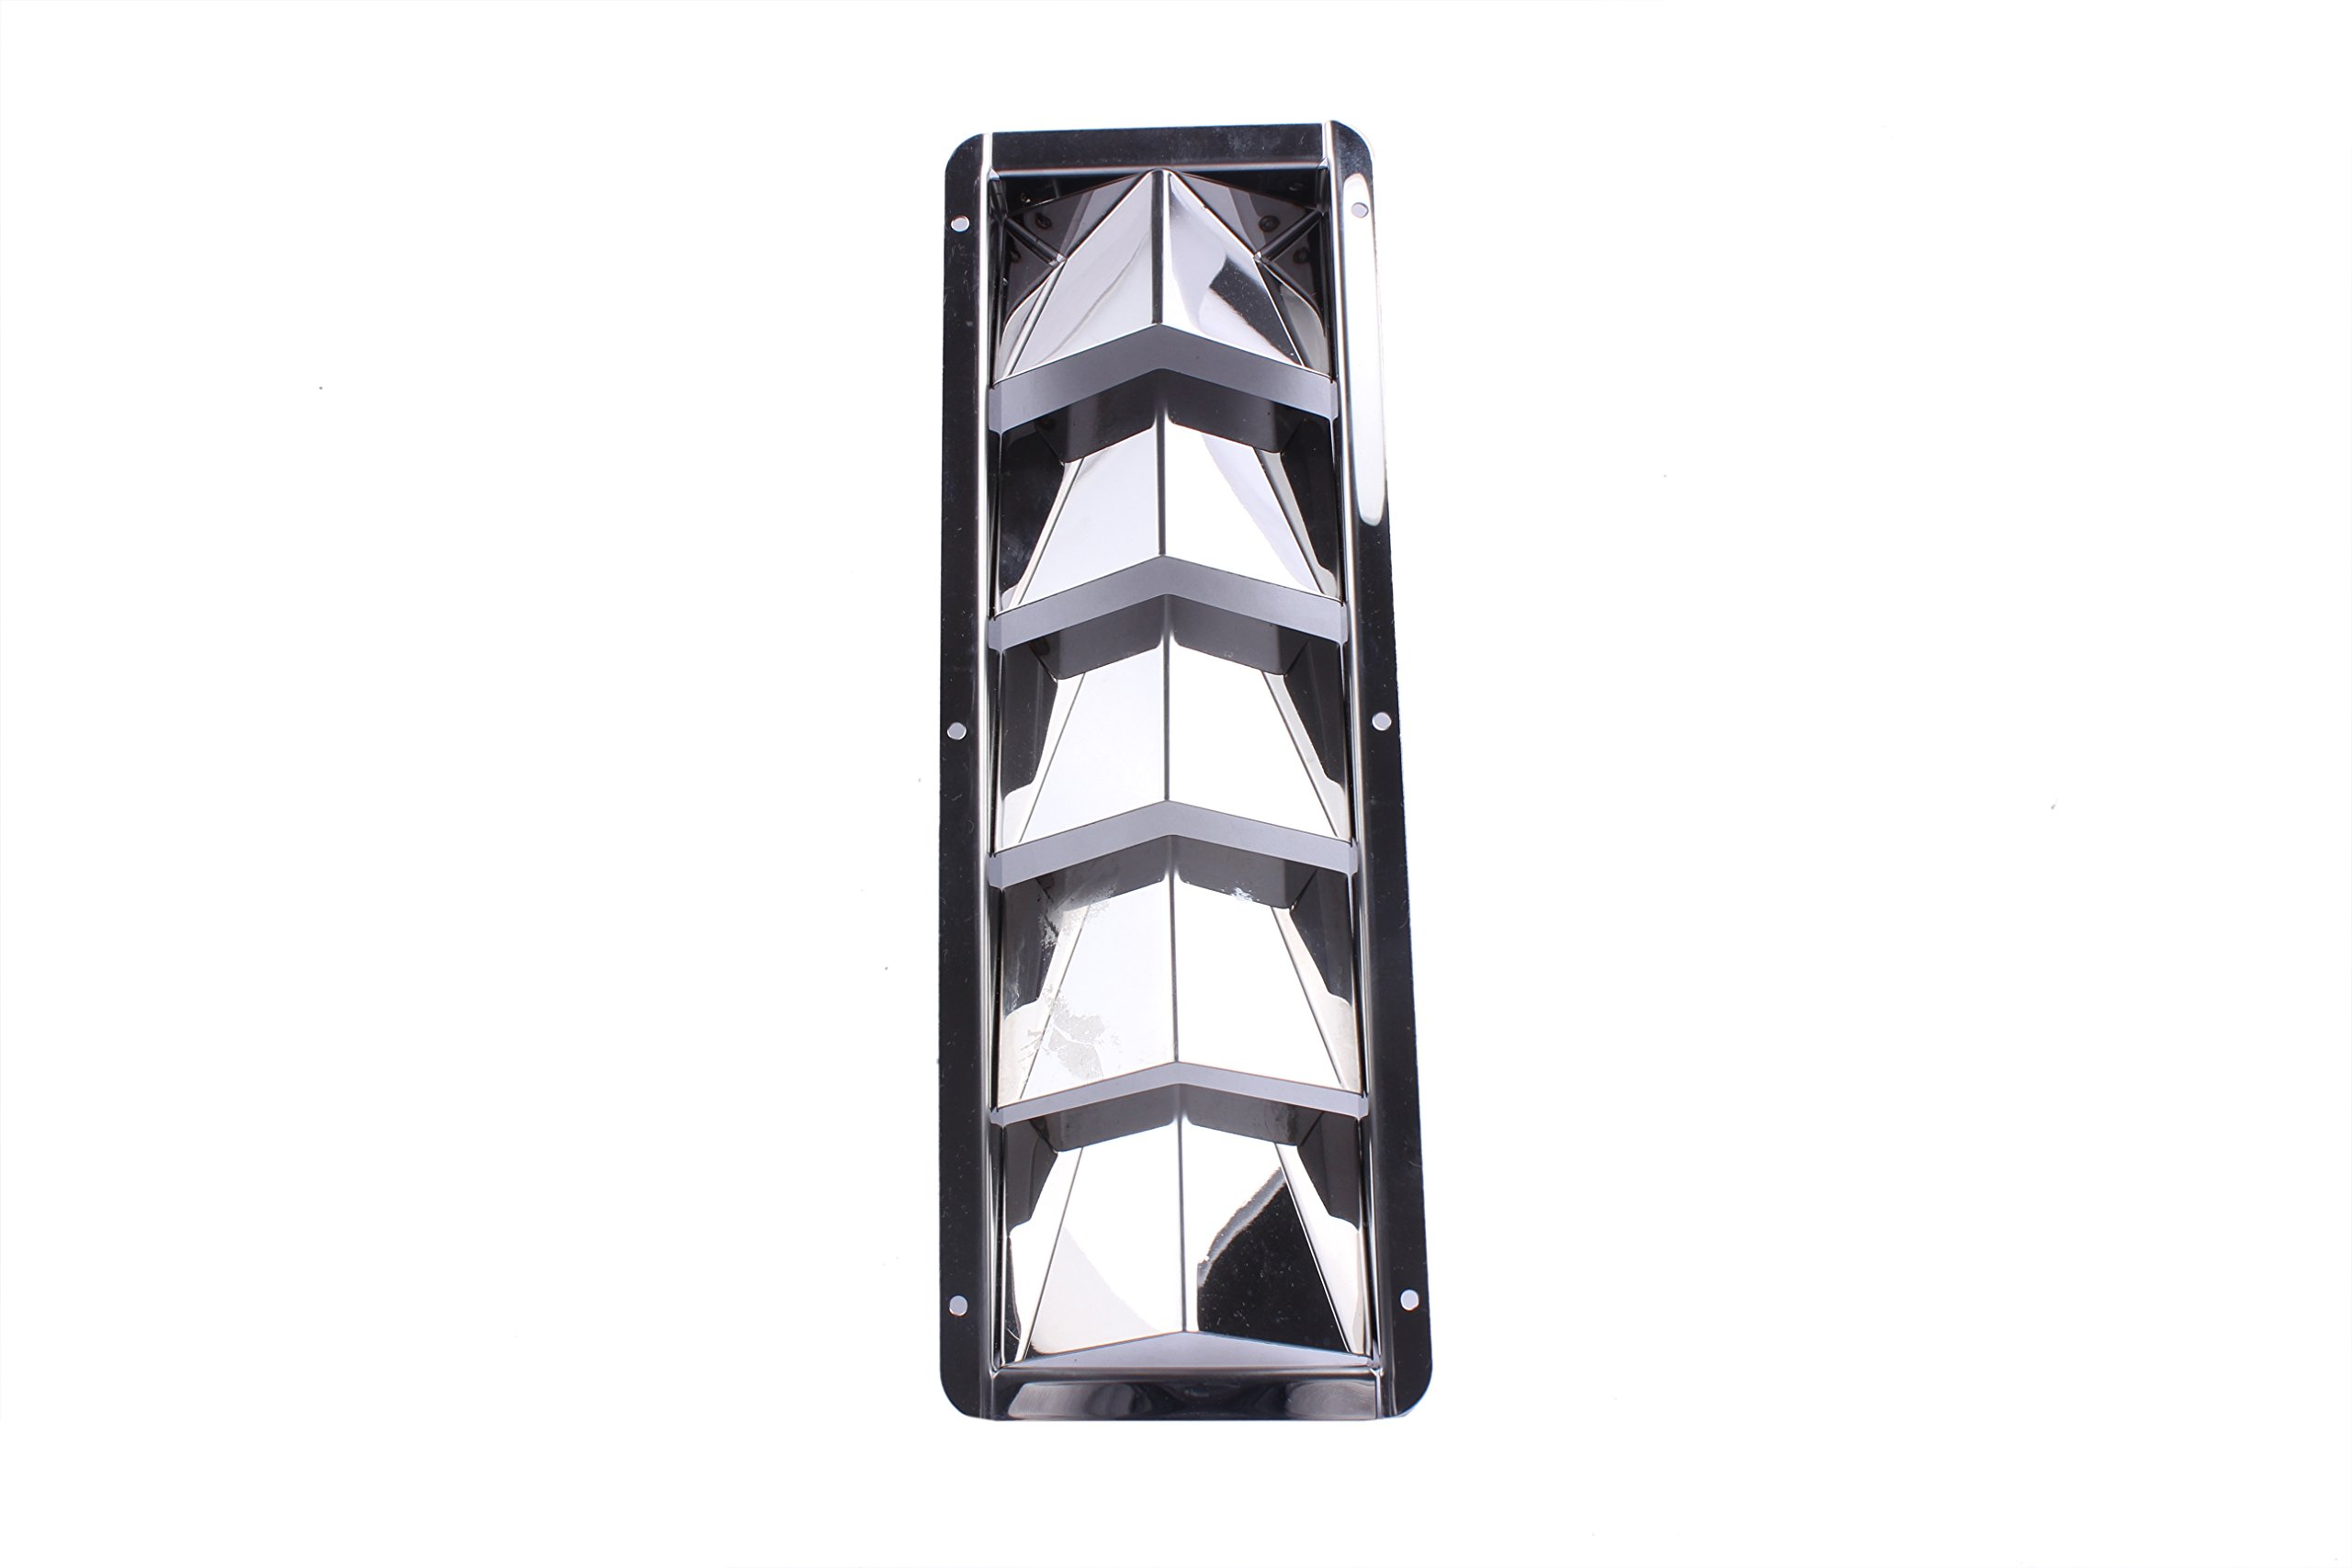 Boat Stainless Steel Louver Vent Boat Marine 5 Slots Vent 12-7/8'' x 4-3/8''